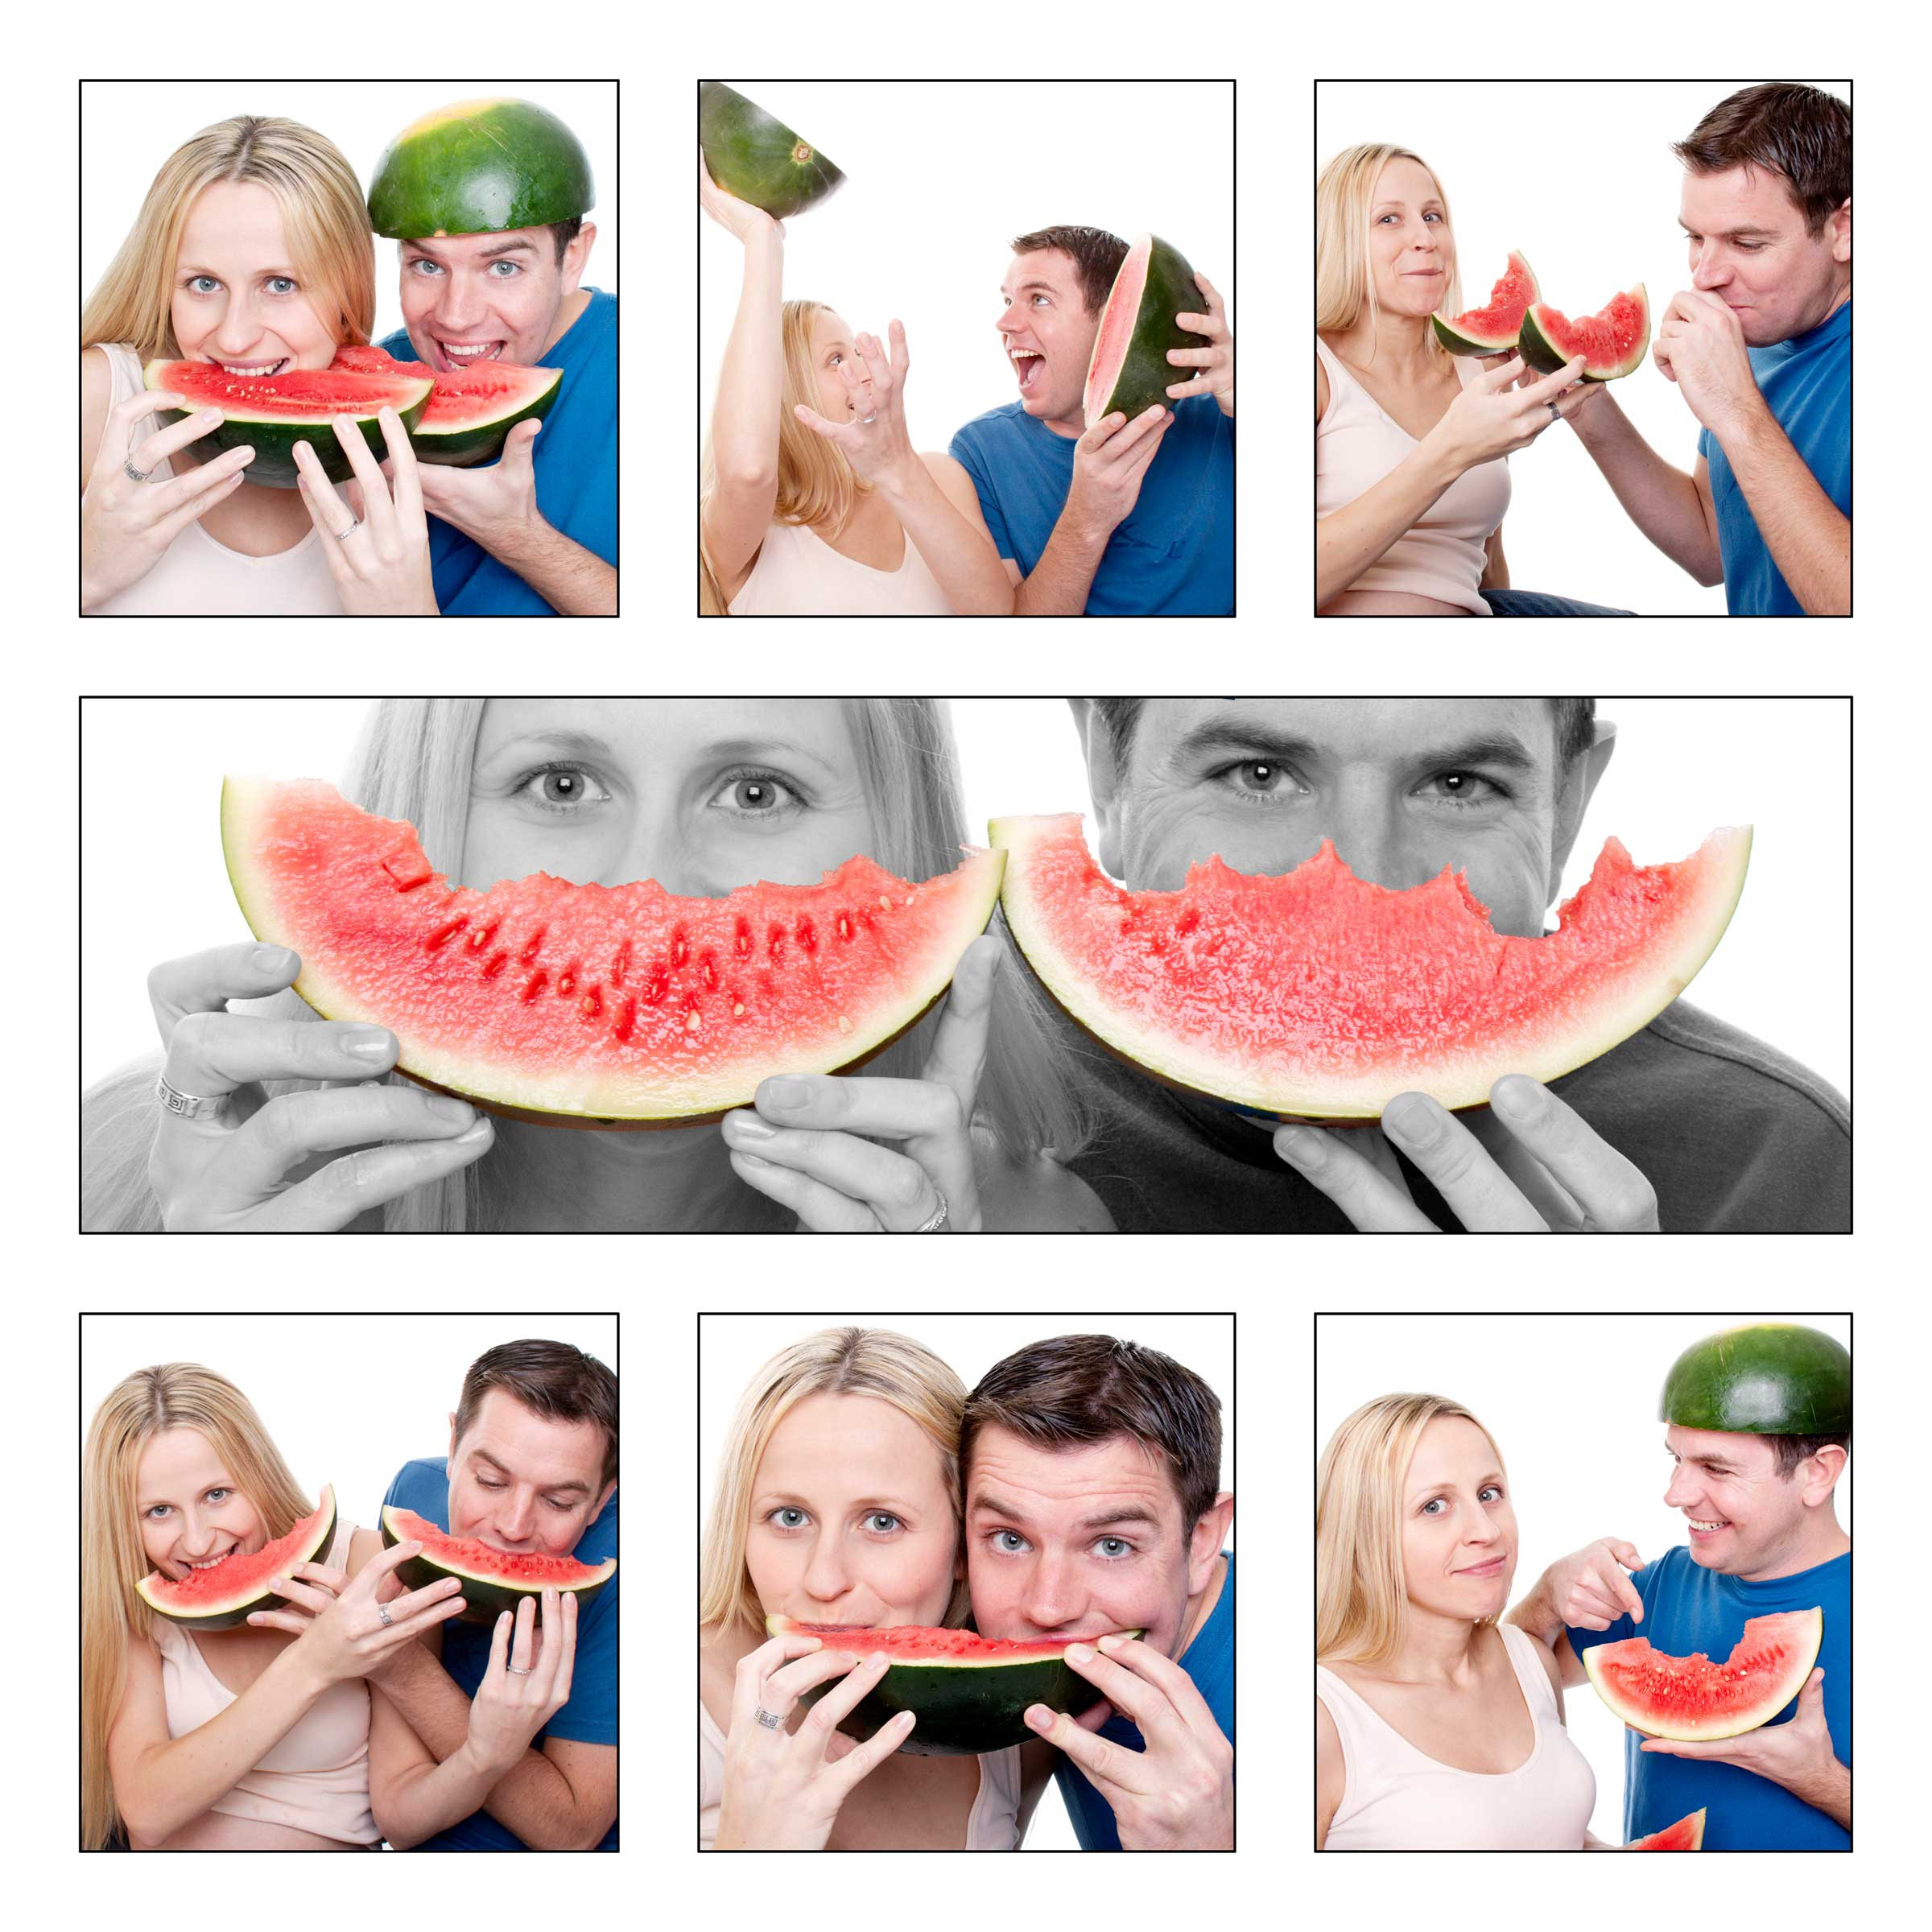 29-Home-Shoot-Couple-Eating-Melon-Philip-Murray-Photography-Dublin